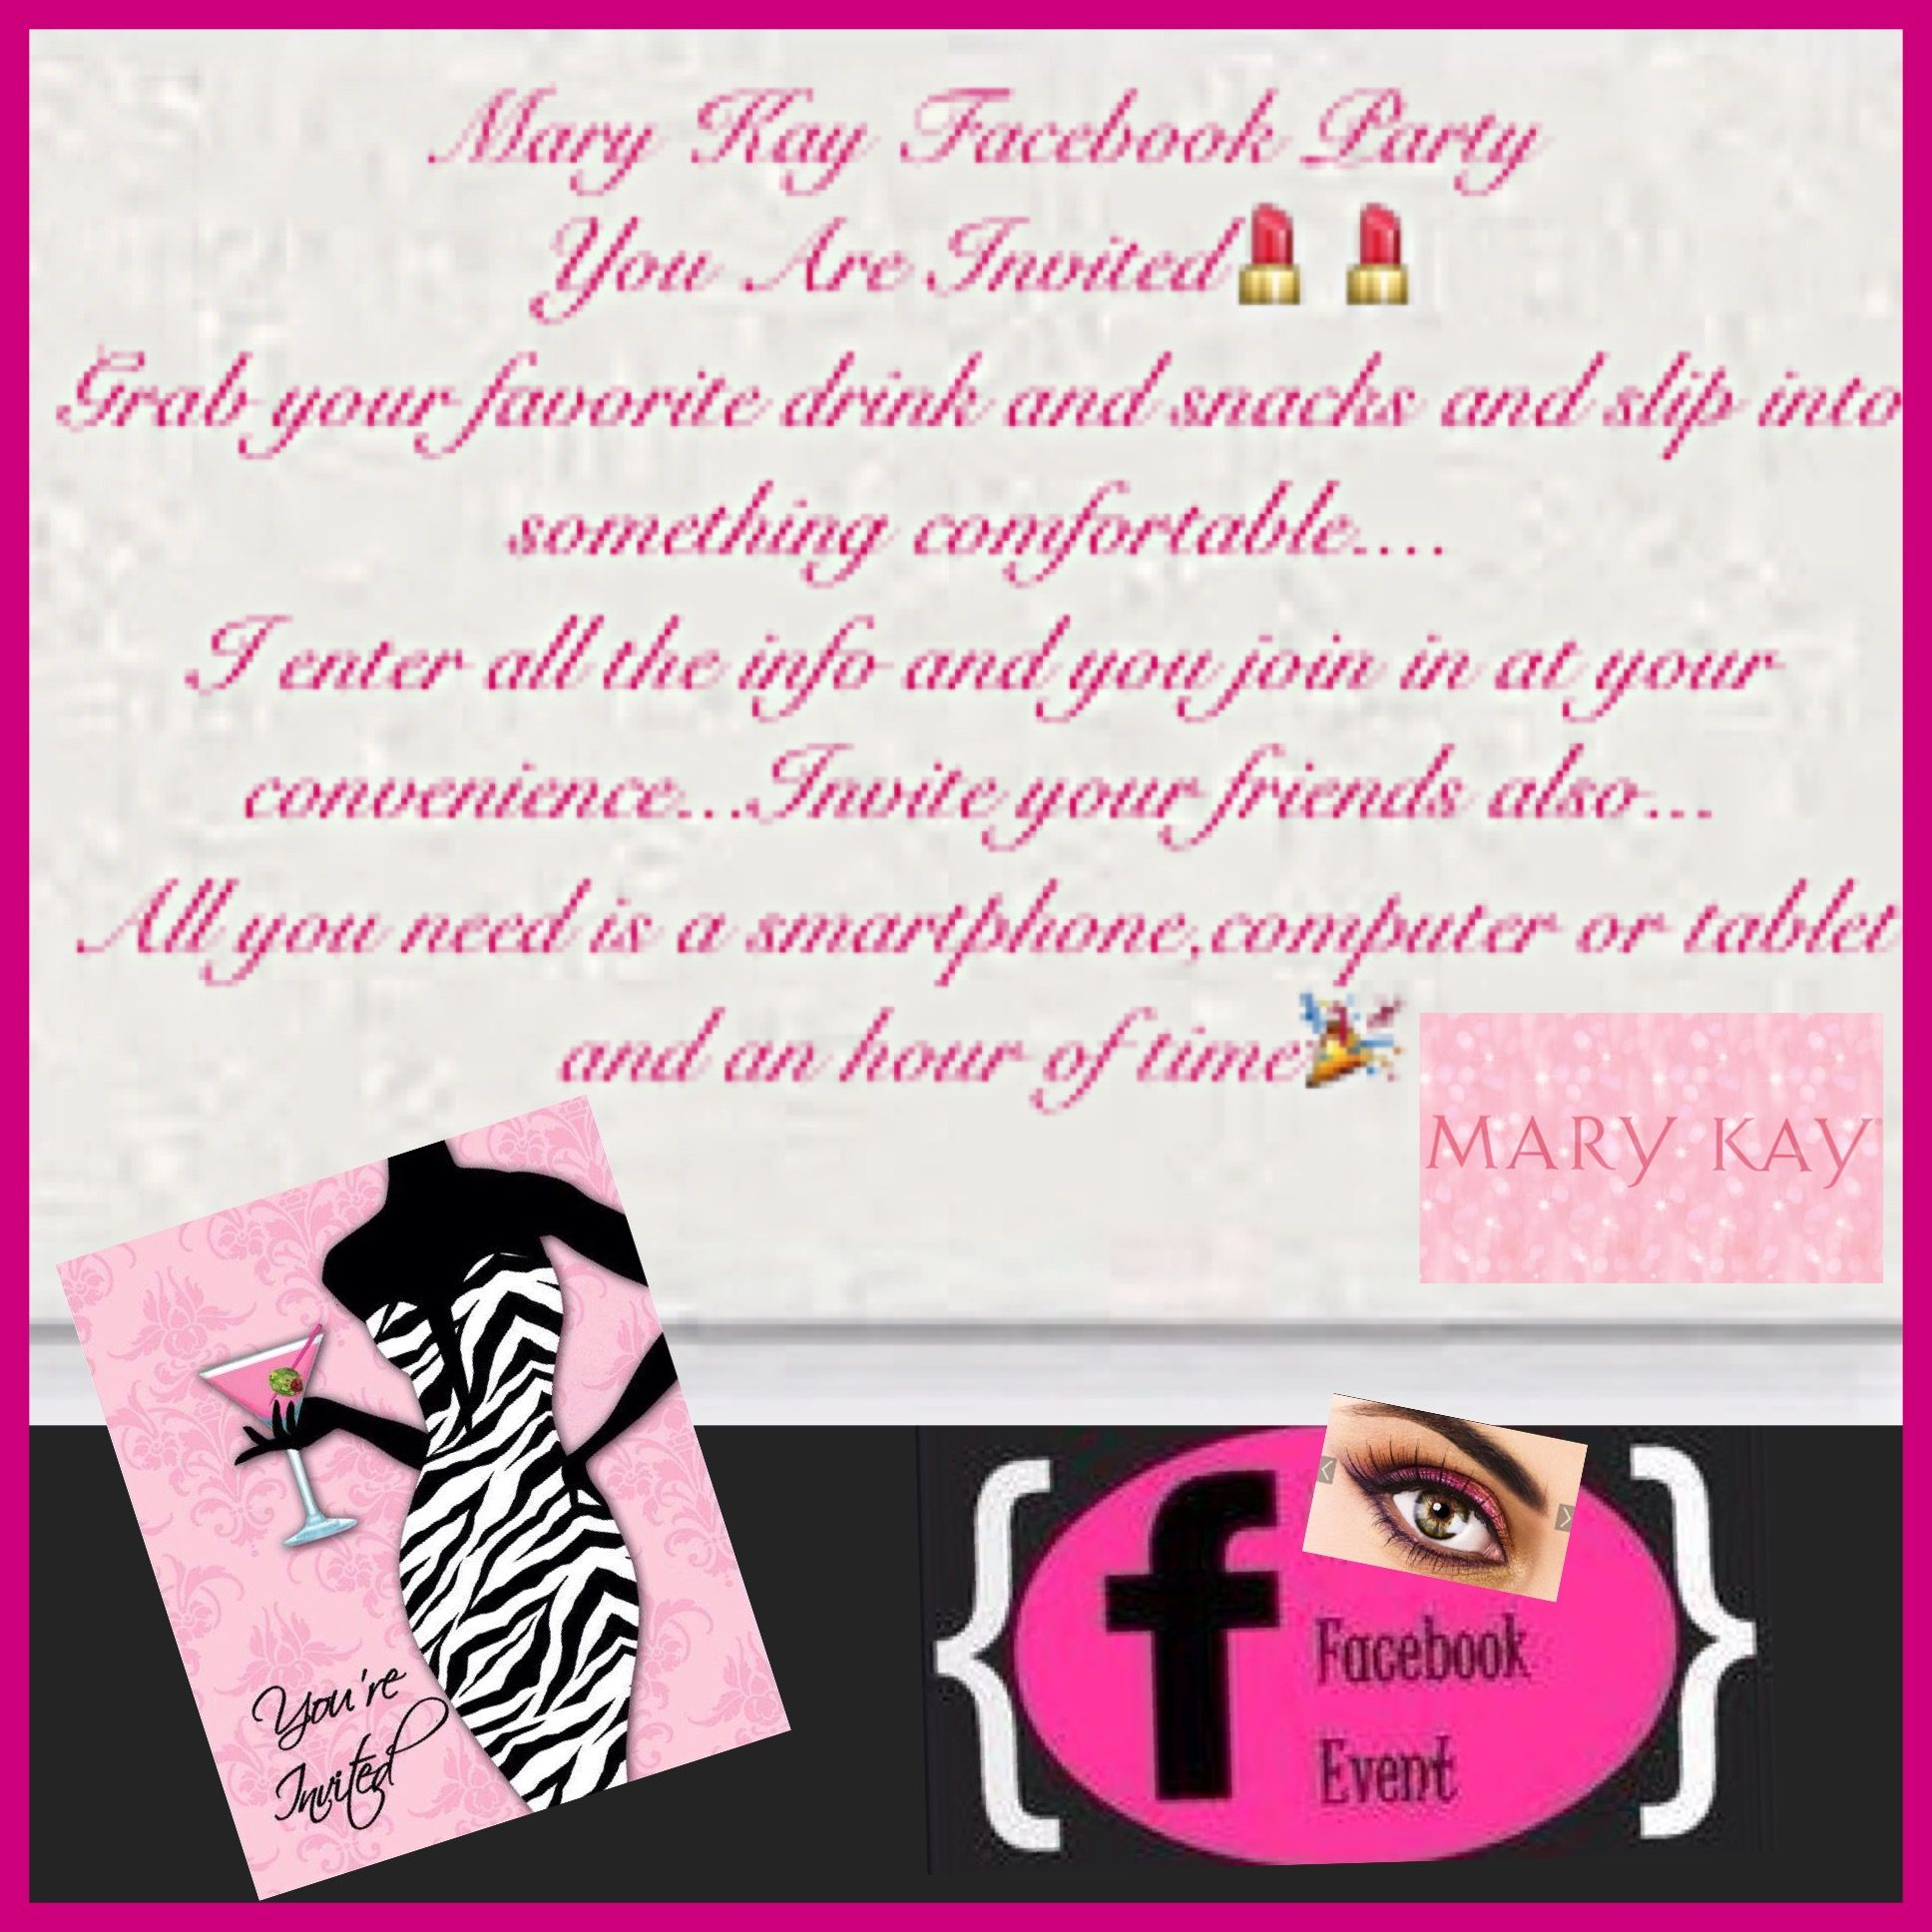 Your invited to a Mary Kay Facebook Party | Mary kay | Pinterest ...